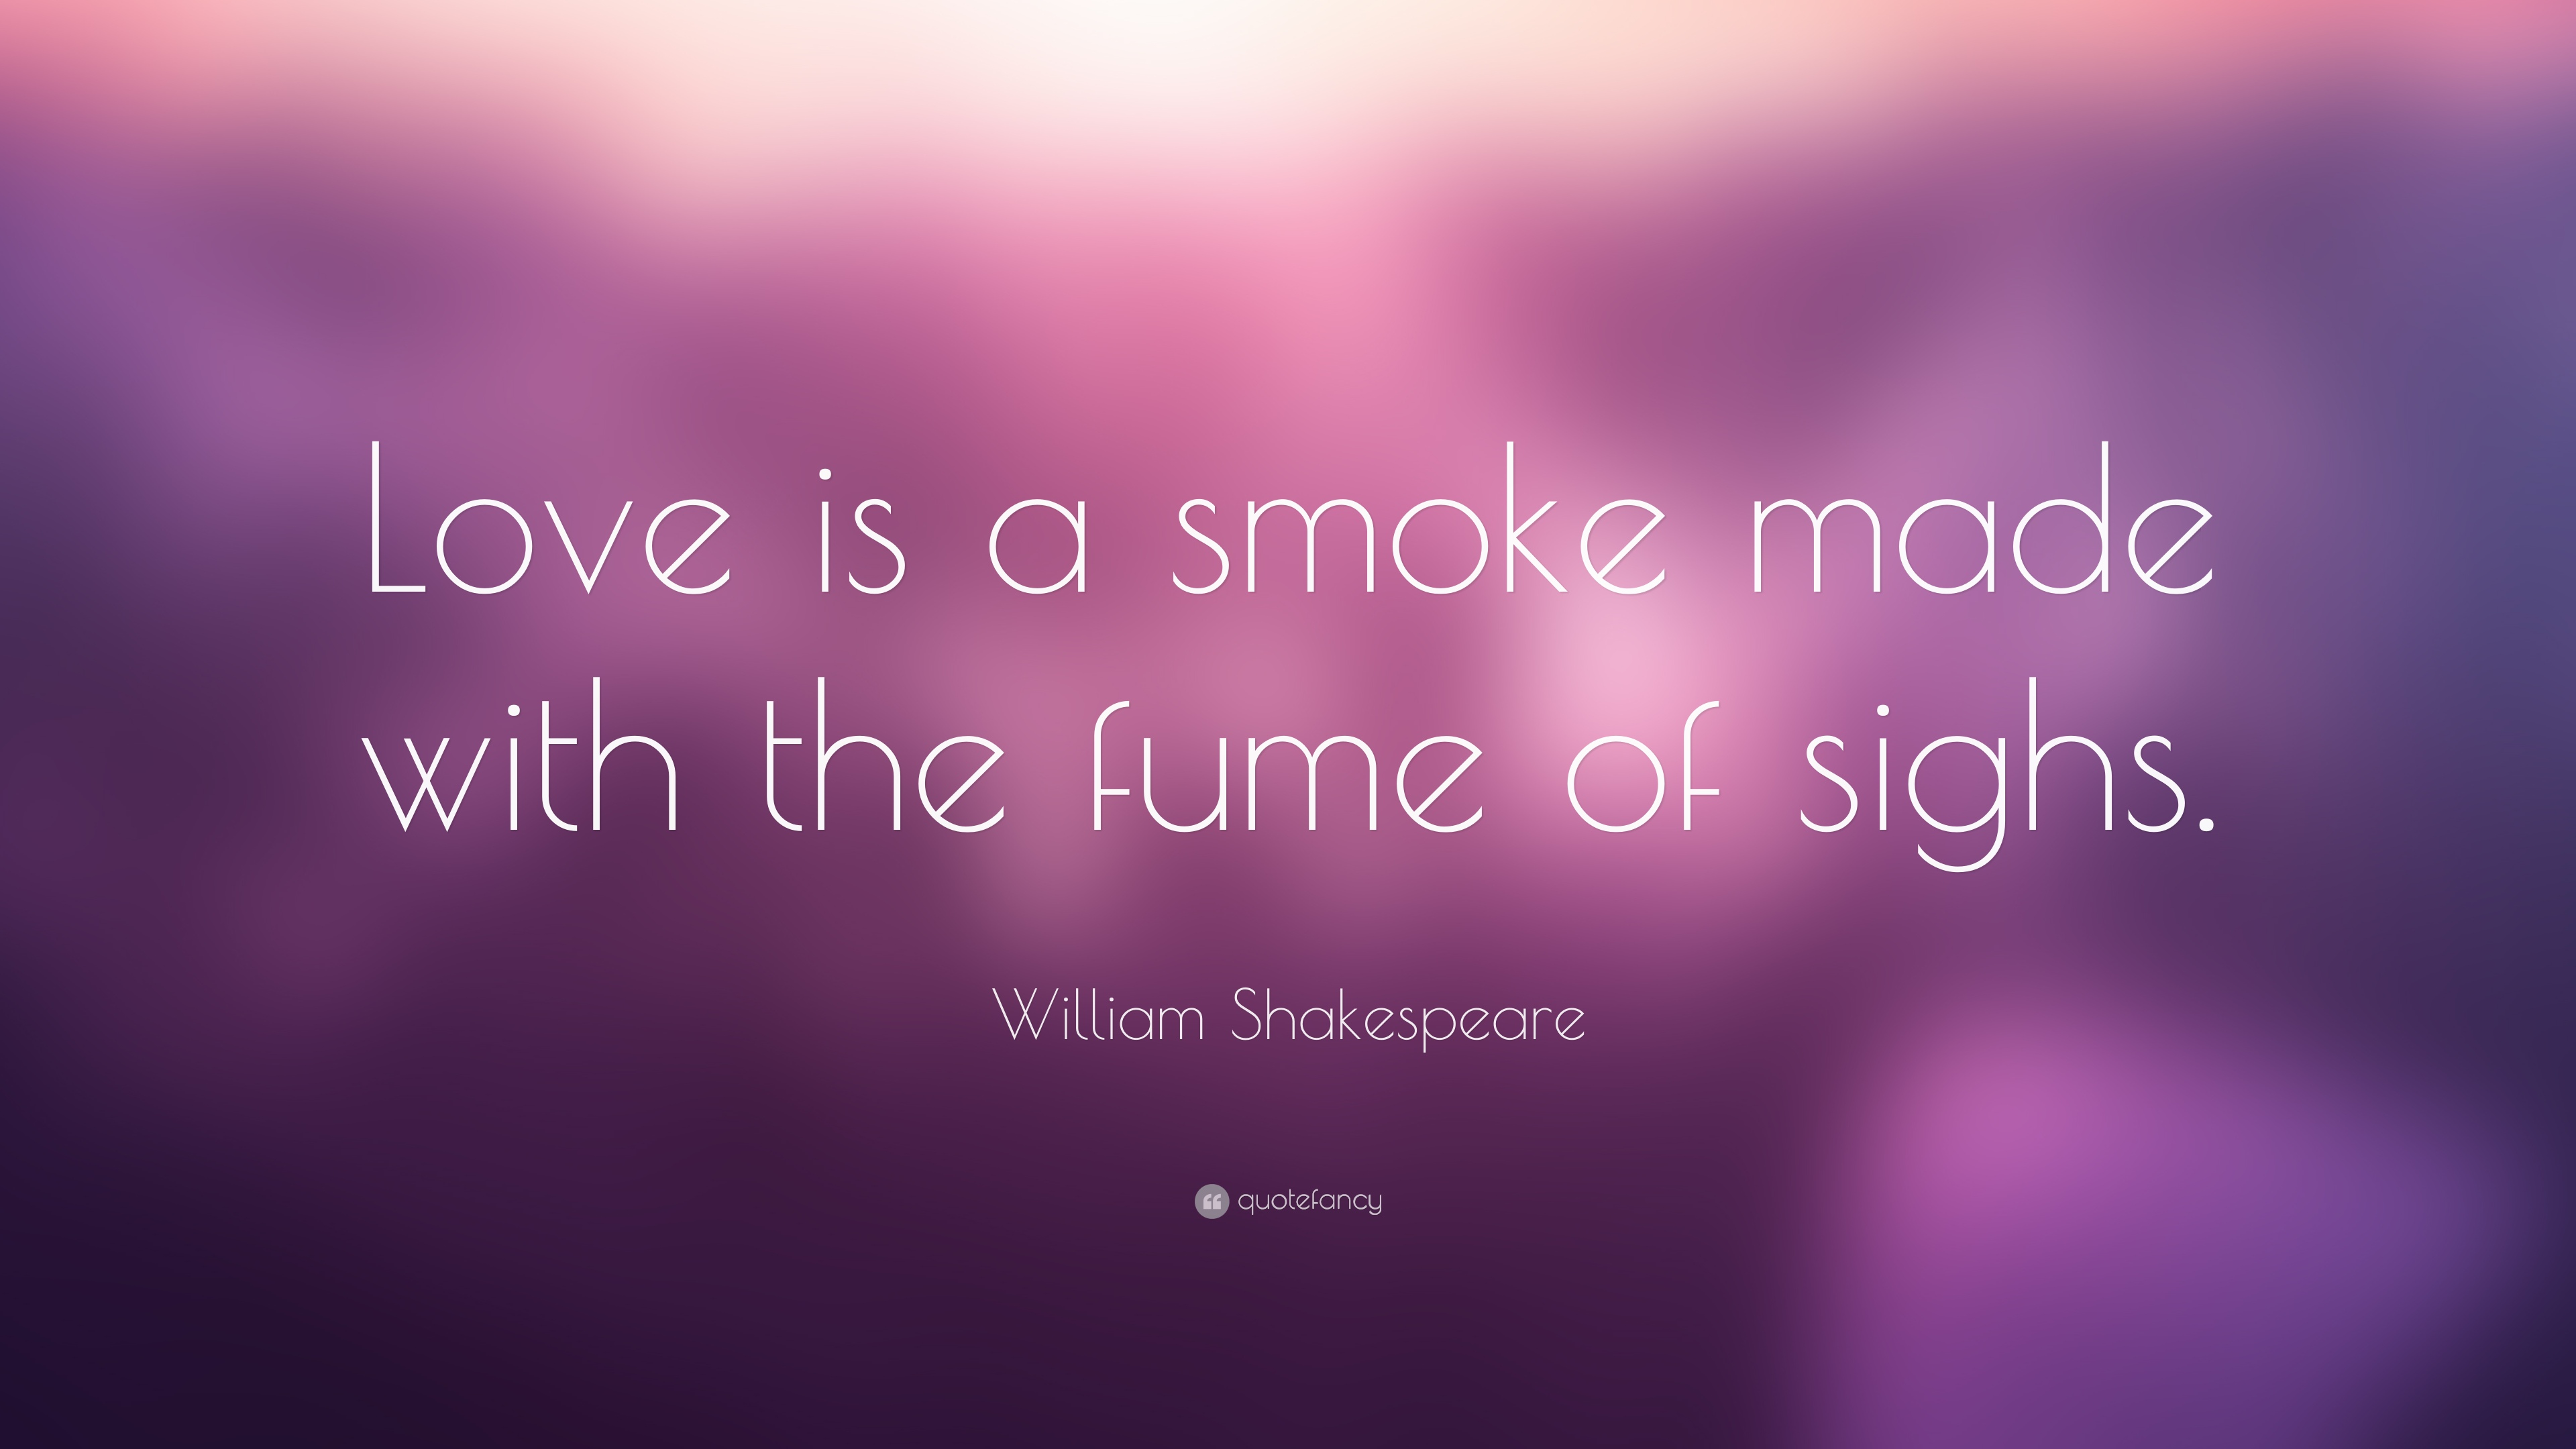 Shakespeare Quotes About Love Shakespeare Quotes About Love Fascinating Best 25 Shakespeare